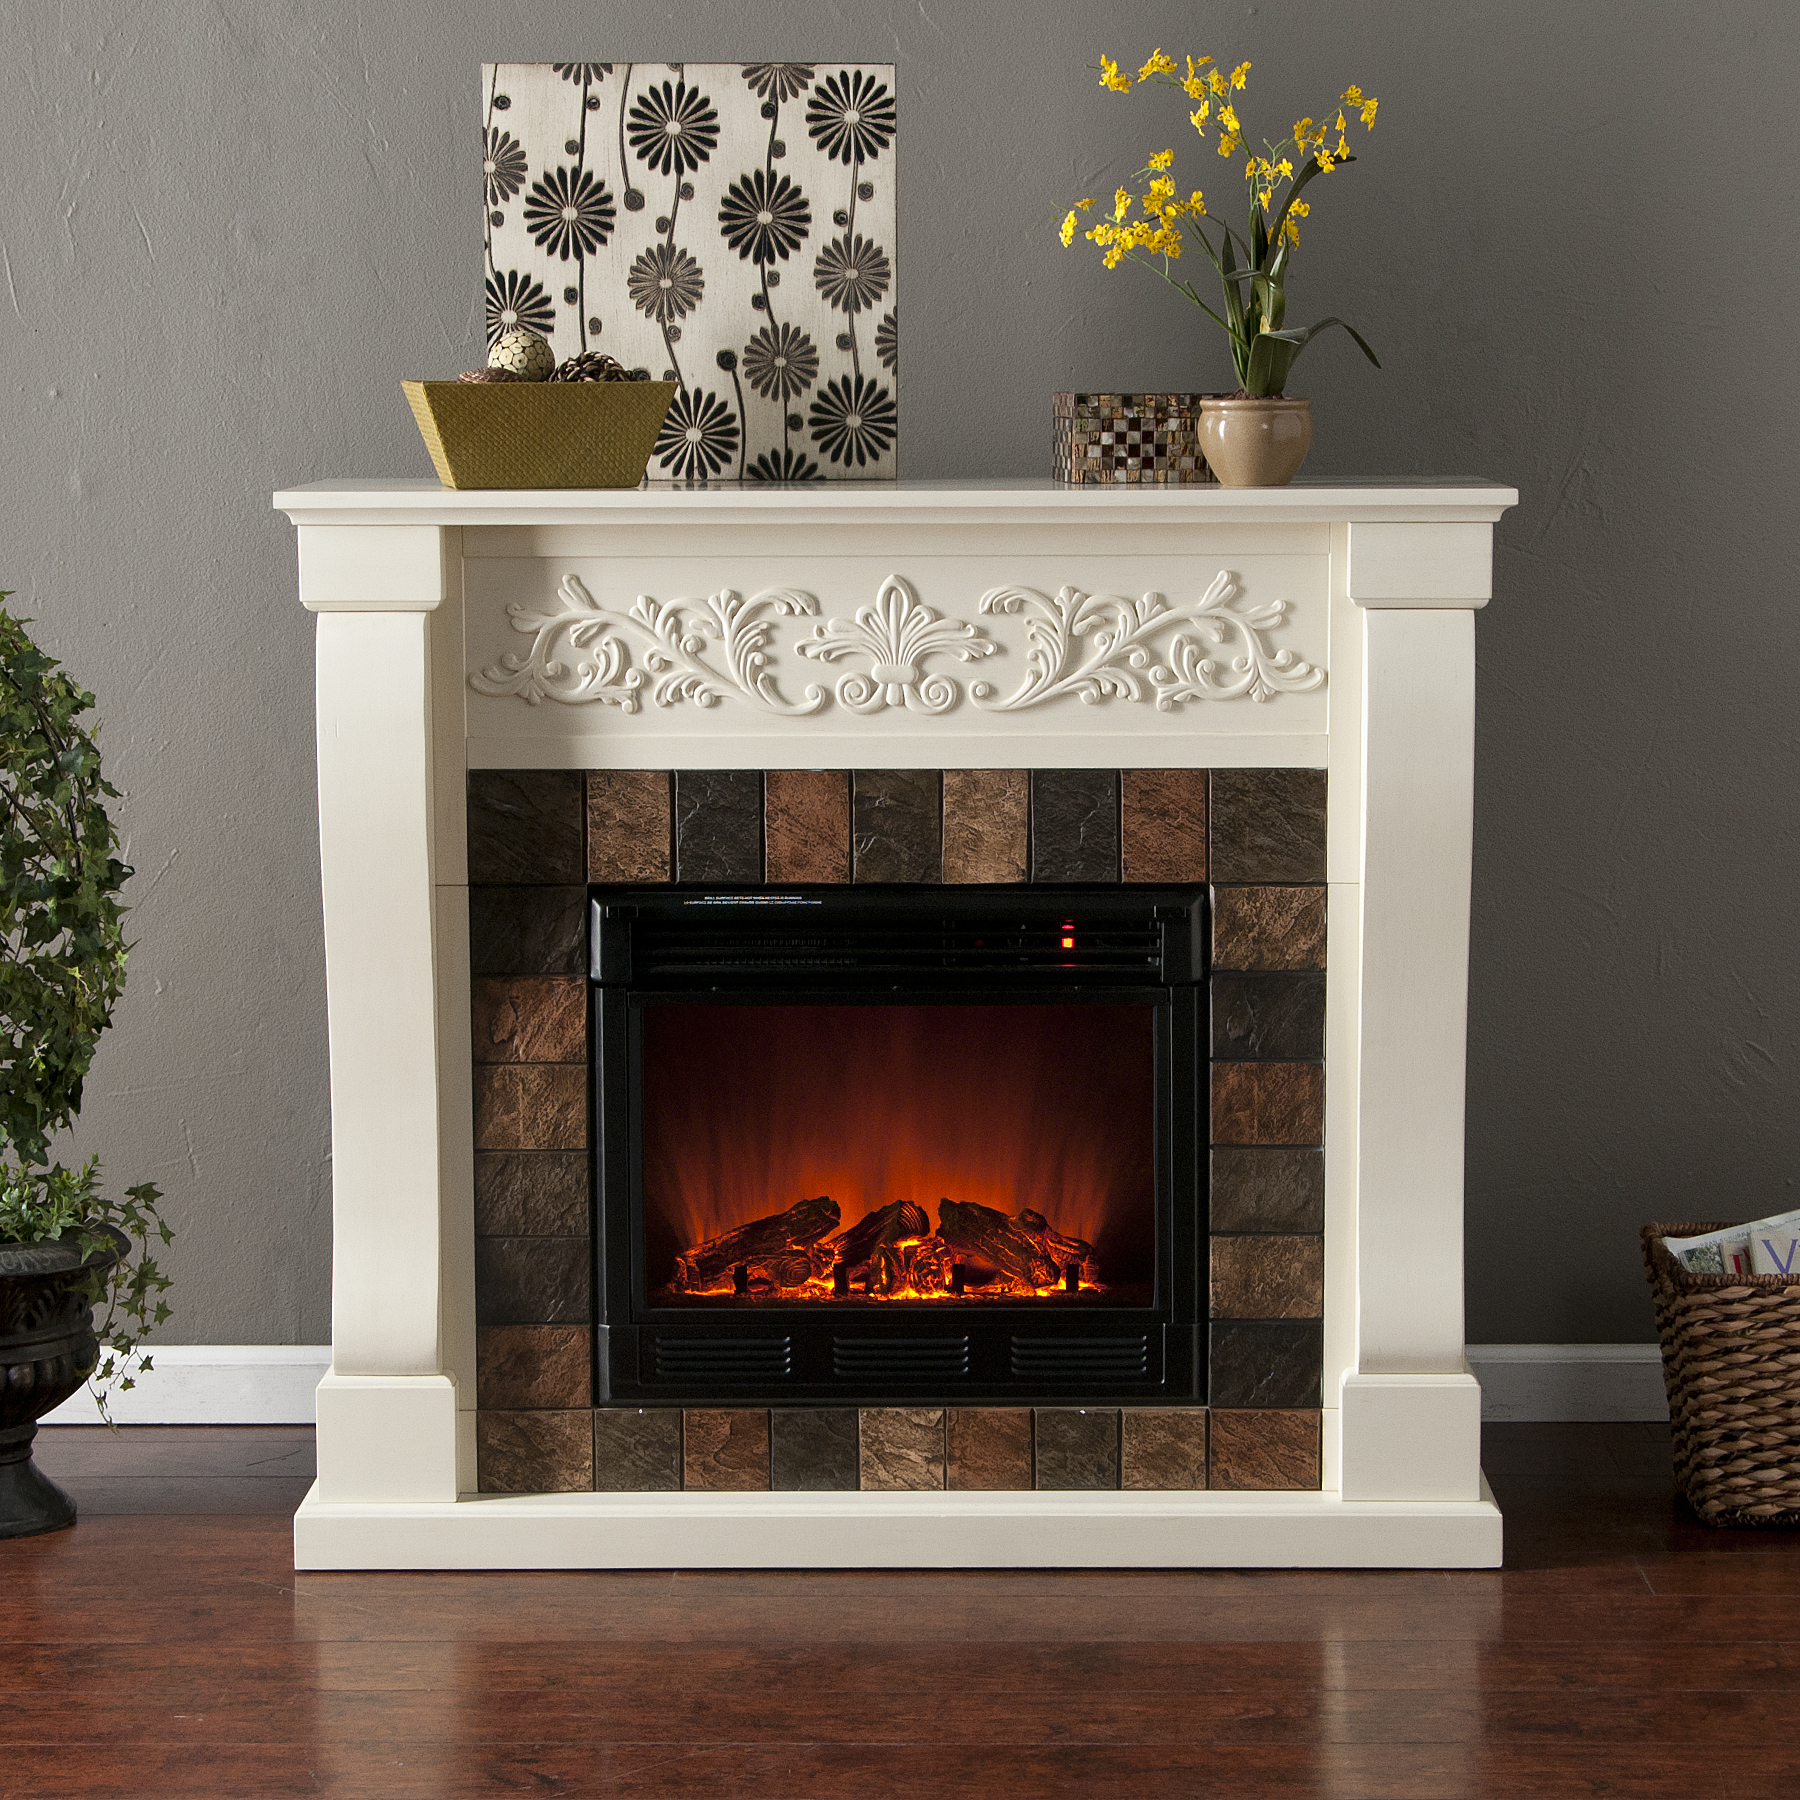 An elegant floral design across the top of Calgary Electric Fireplace-Ivory crisp ivory fireplace draws attention